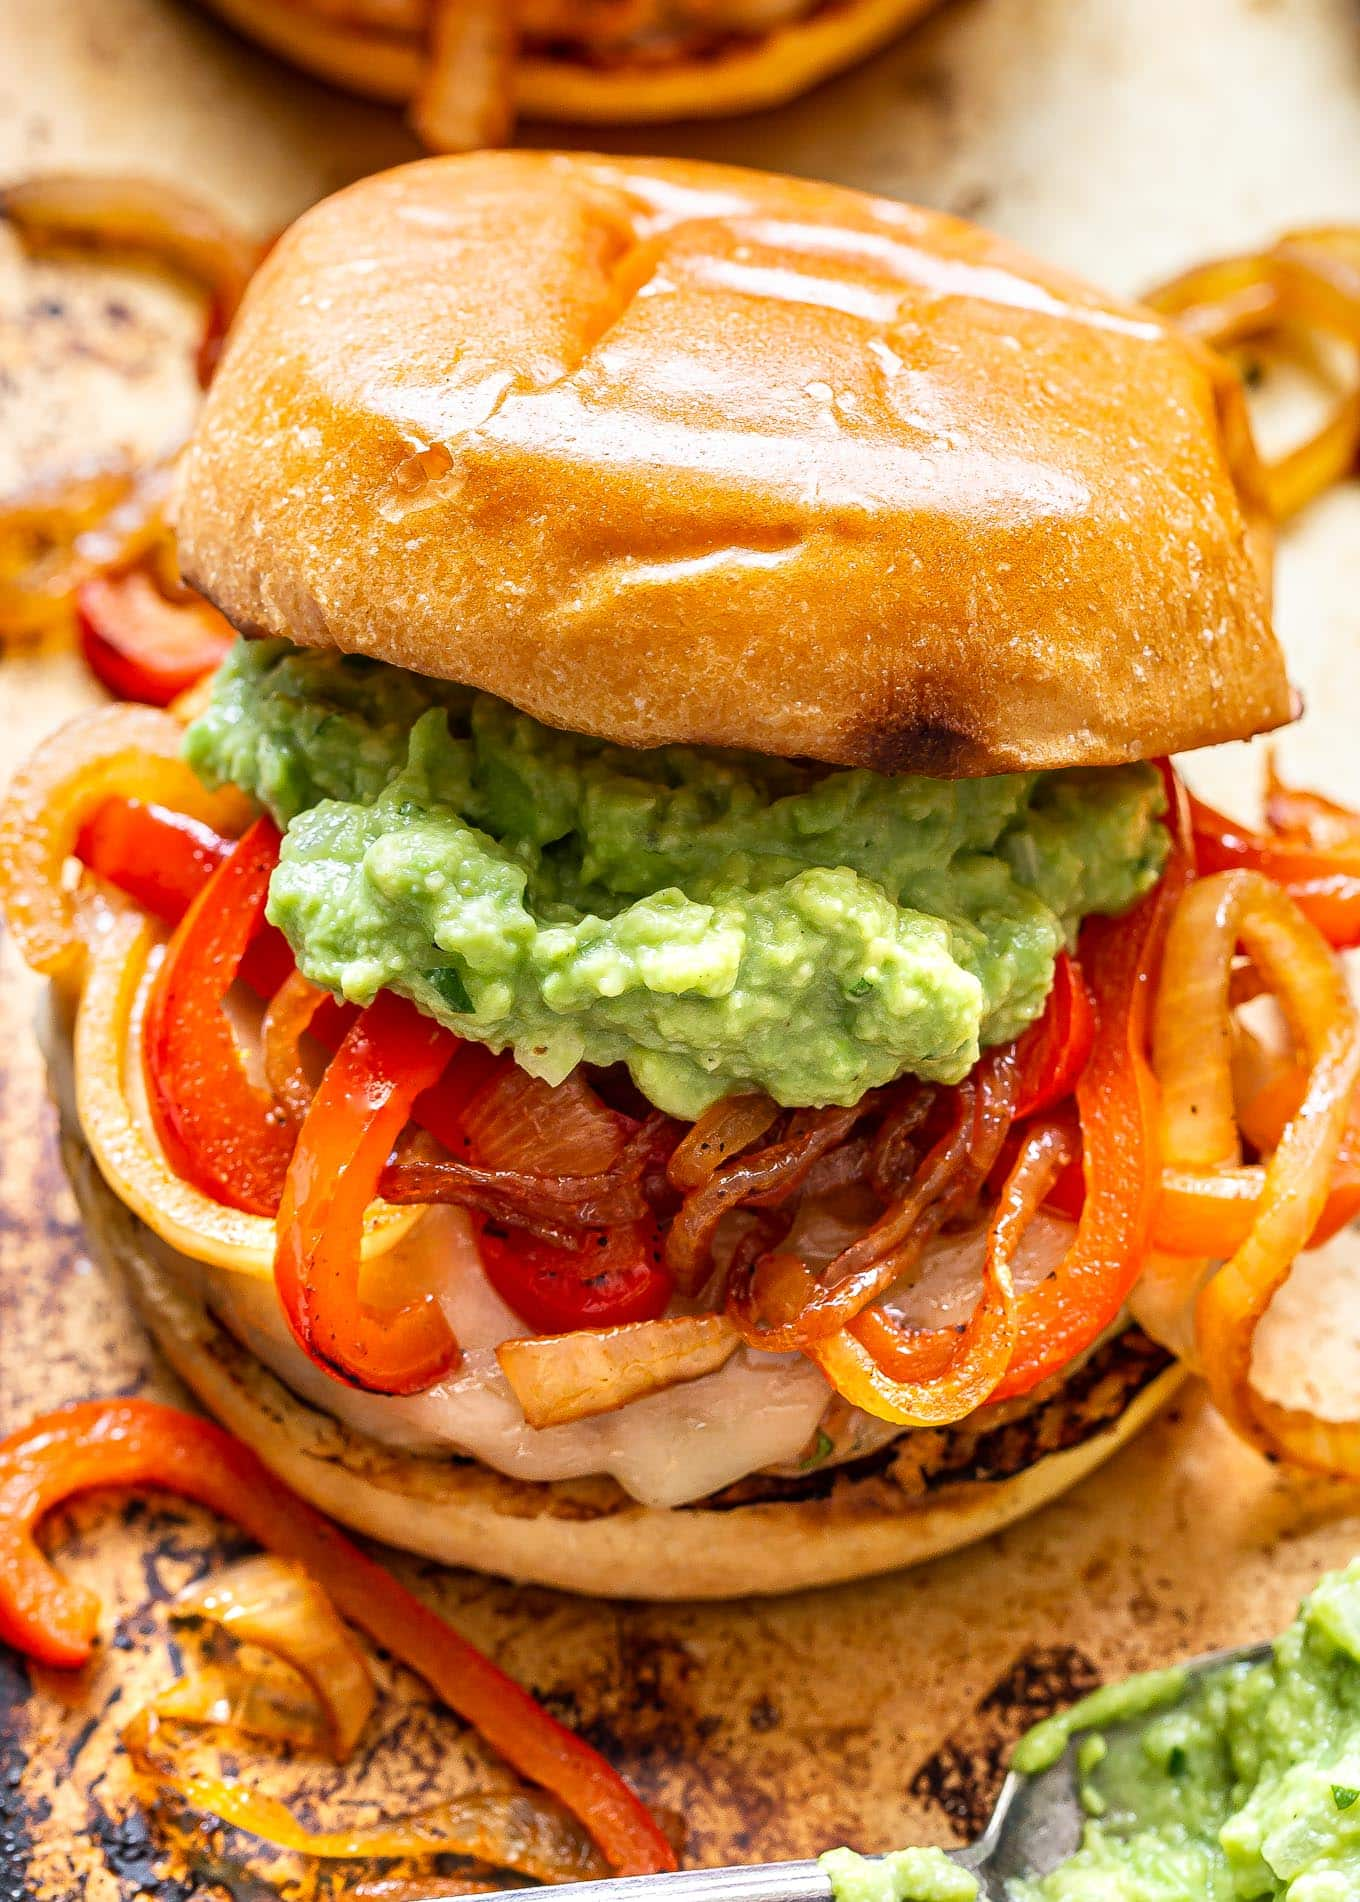 Chicken Fajita Burger topped with peppers, onions and guacamole.